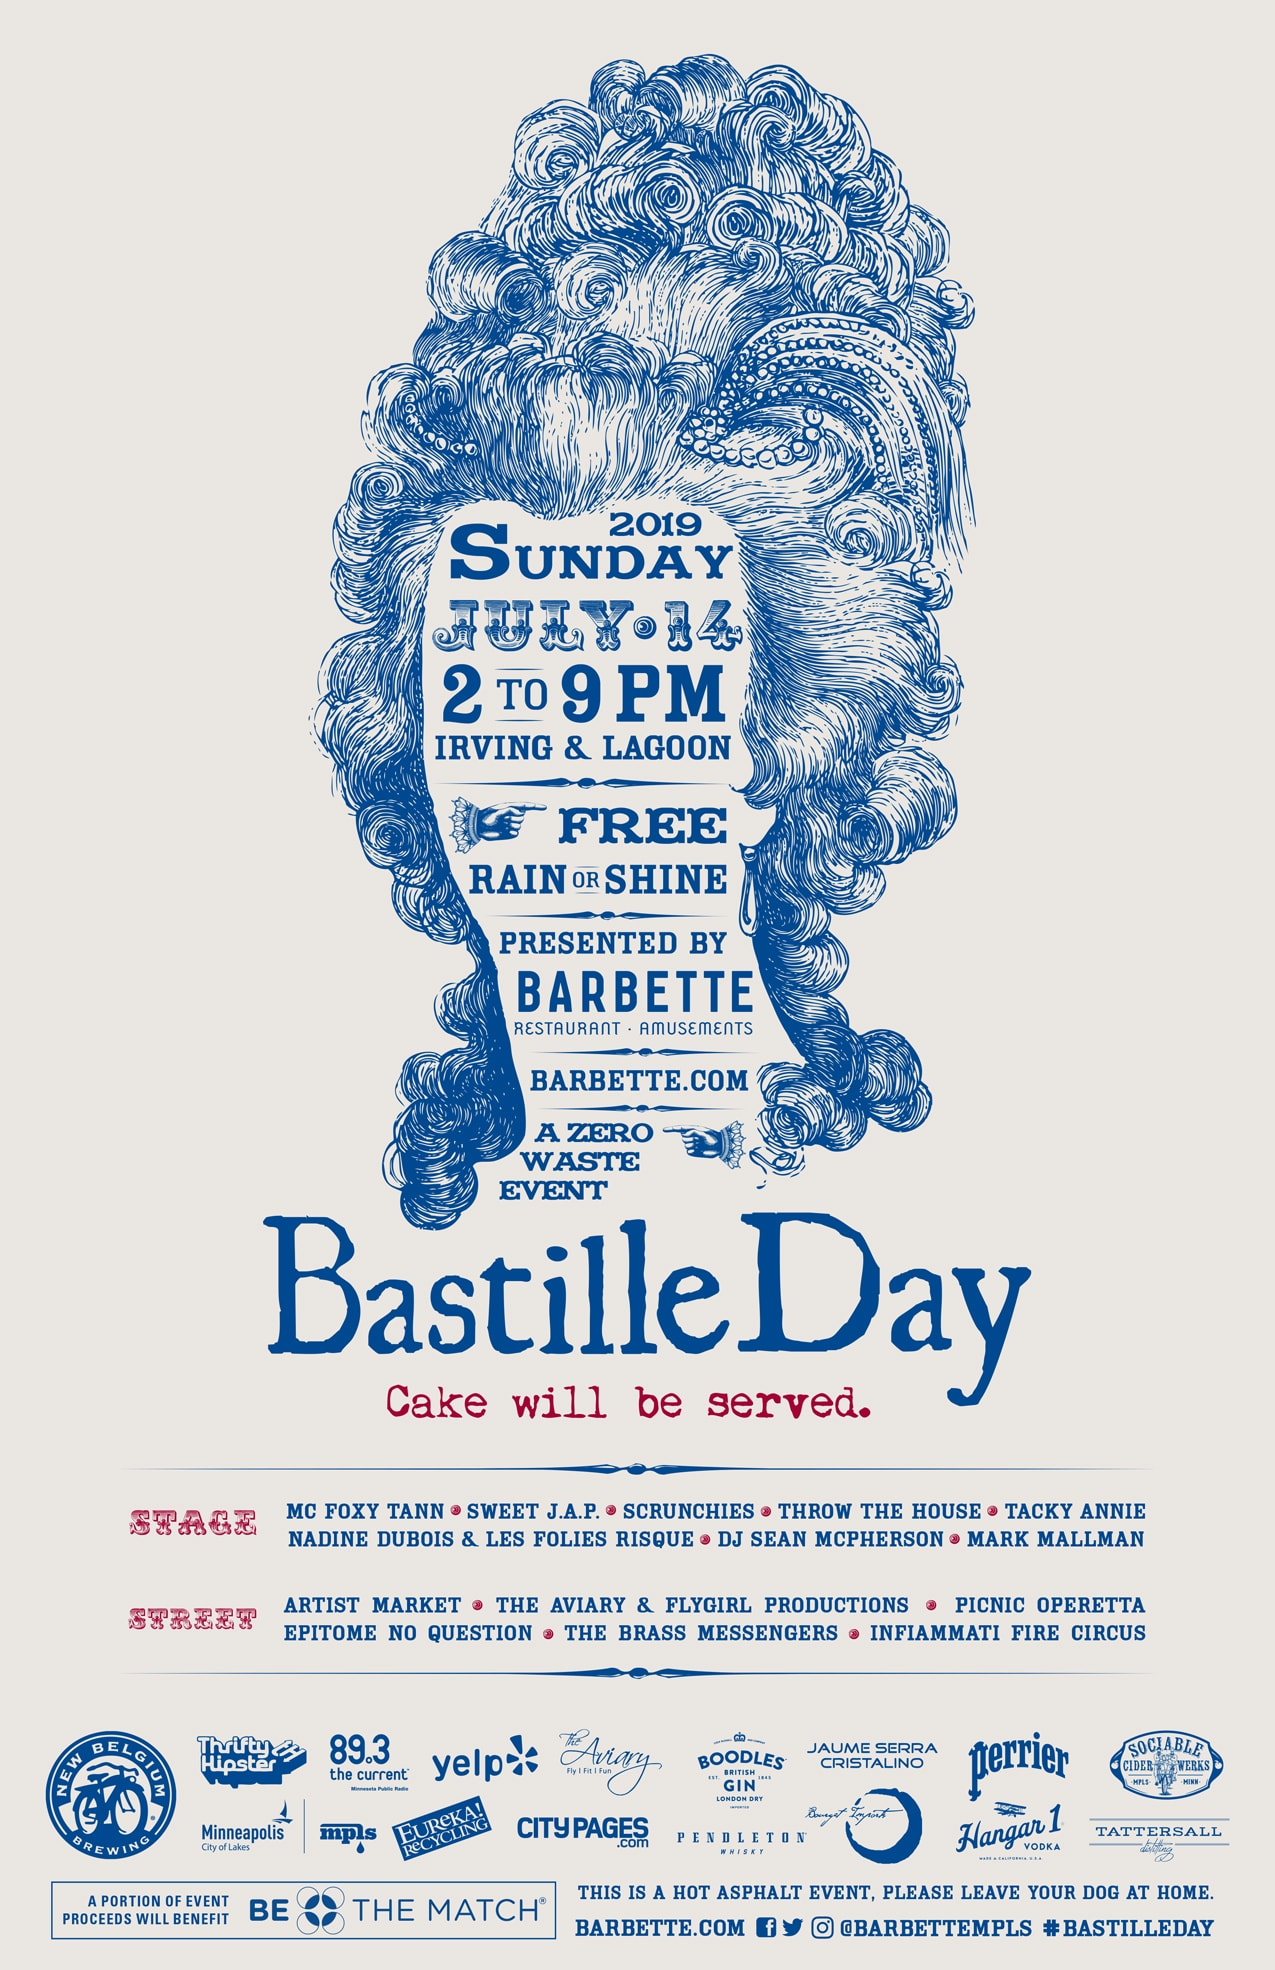 Join us on July 14th, 2019 for the Bastille Day Block Party in Minneapolis, MN. Sponsored by Barbette, enjoy performances from MC Foxy Tann, Sweet J.A.P., Scrunchies, & many more.